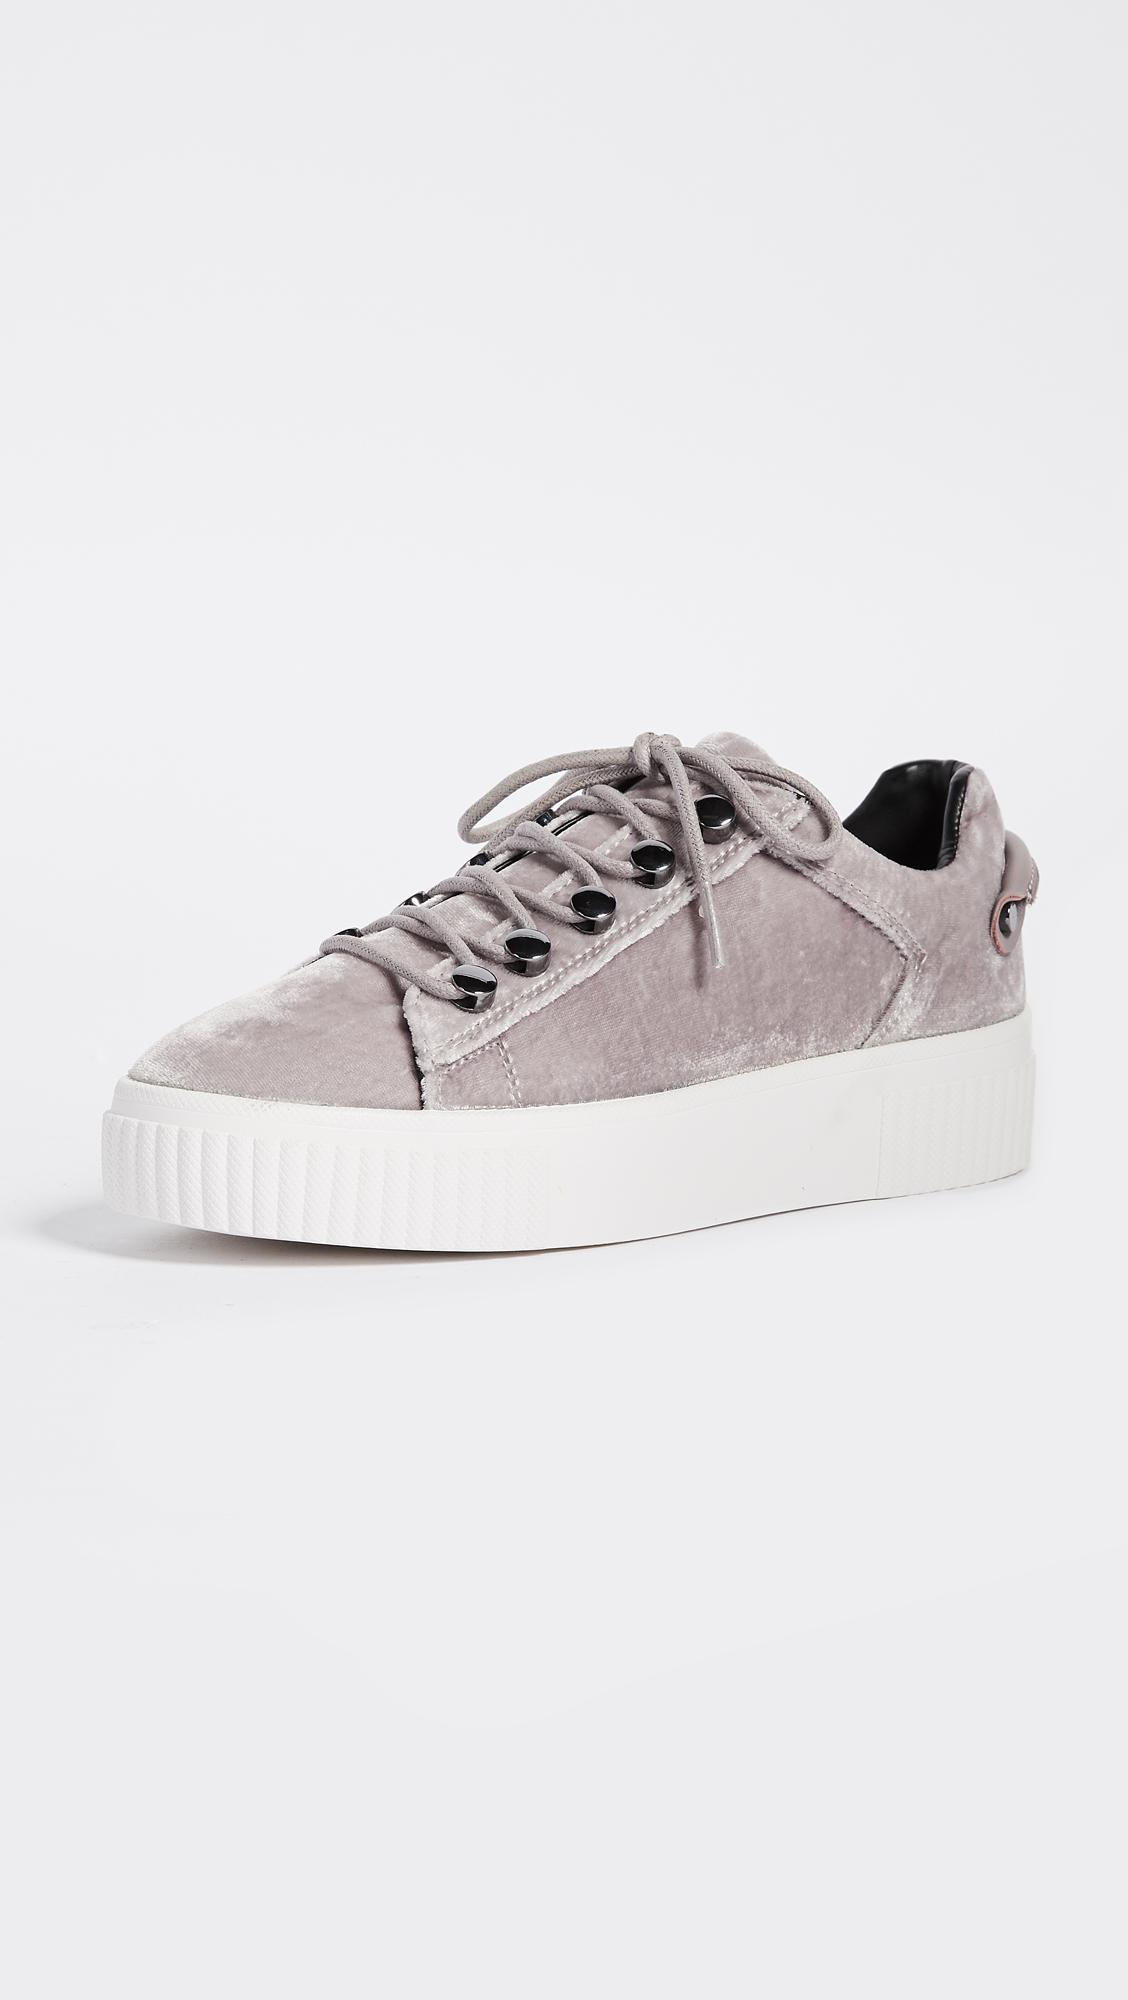 IRO Velvet Platform Trainers outlet order free shipping best wholesale discount latest collections pwQ9u7o